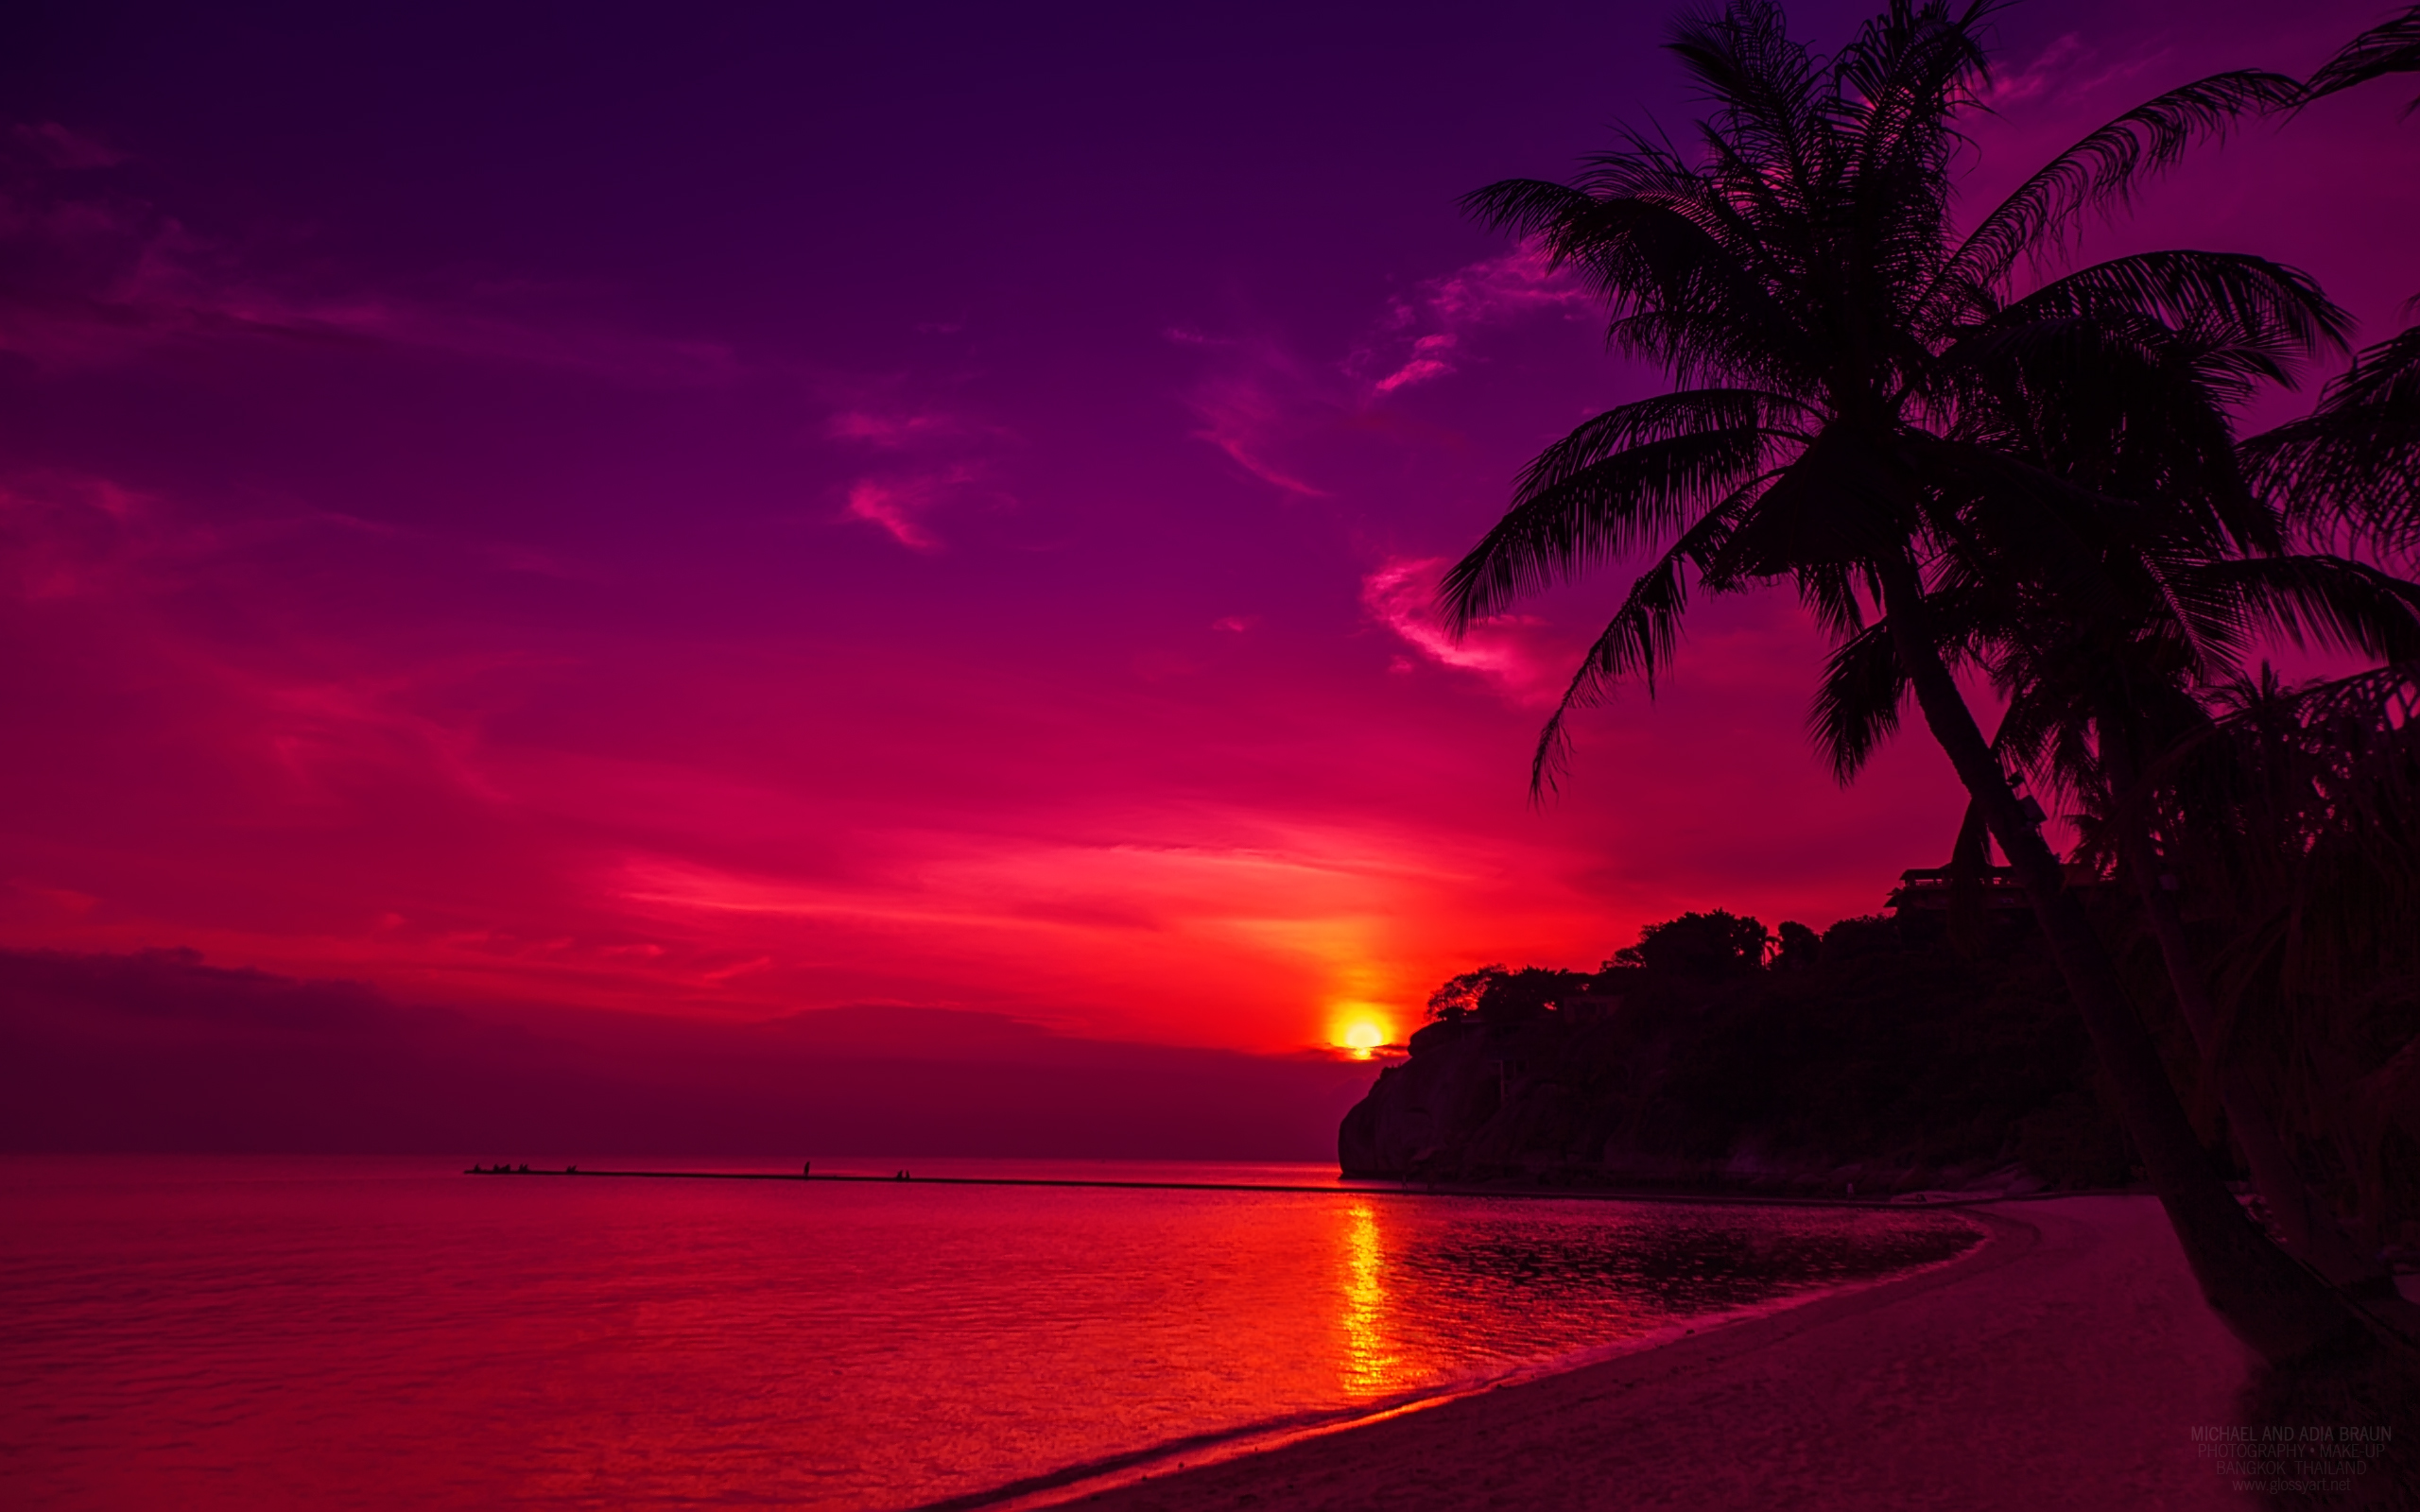 Hd wallpaper wap - Thailand Beach Sunset Wallpapers Hd Wallpapers